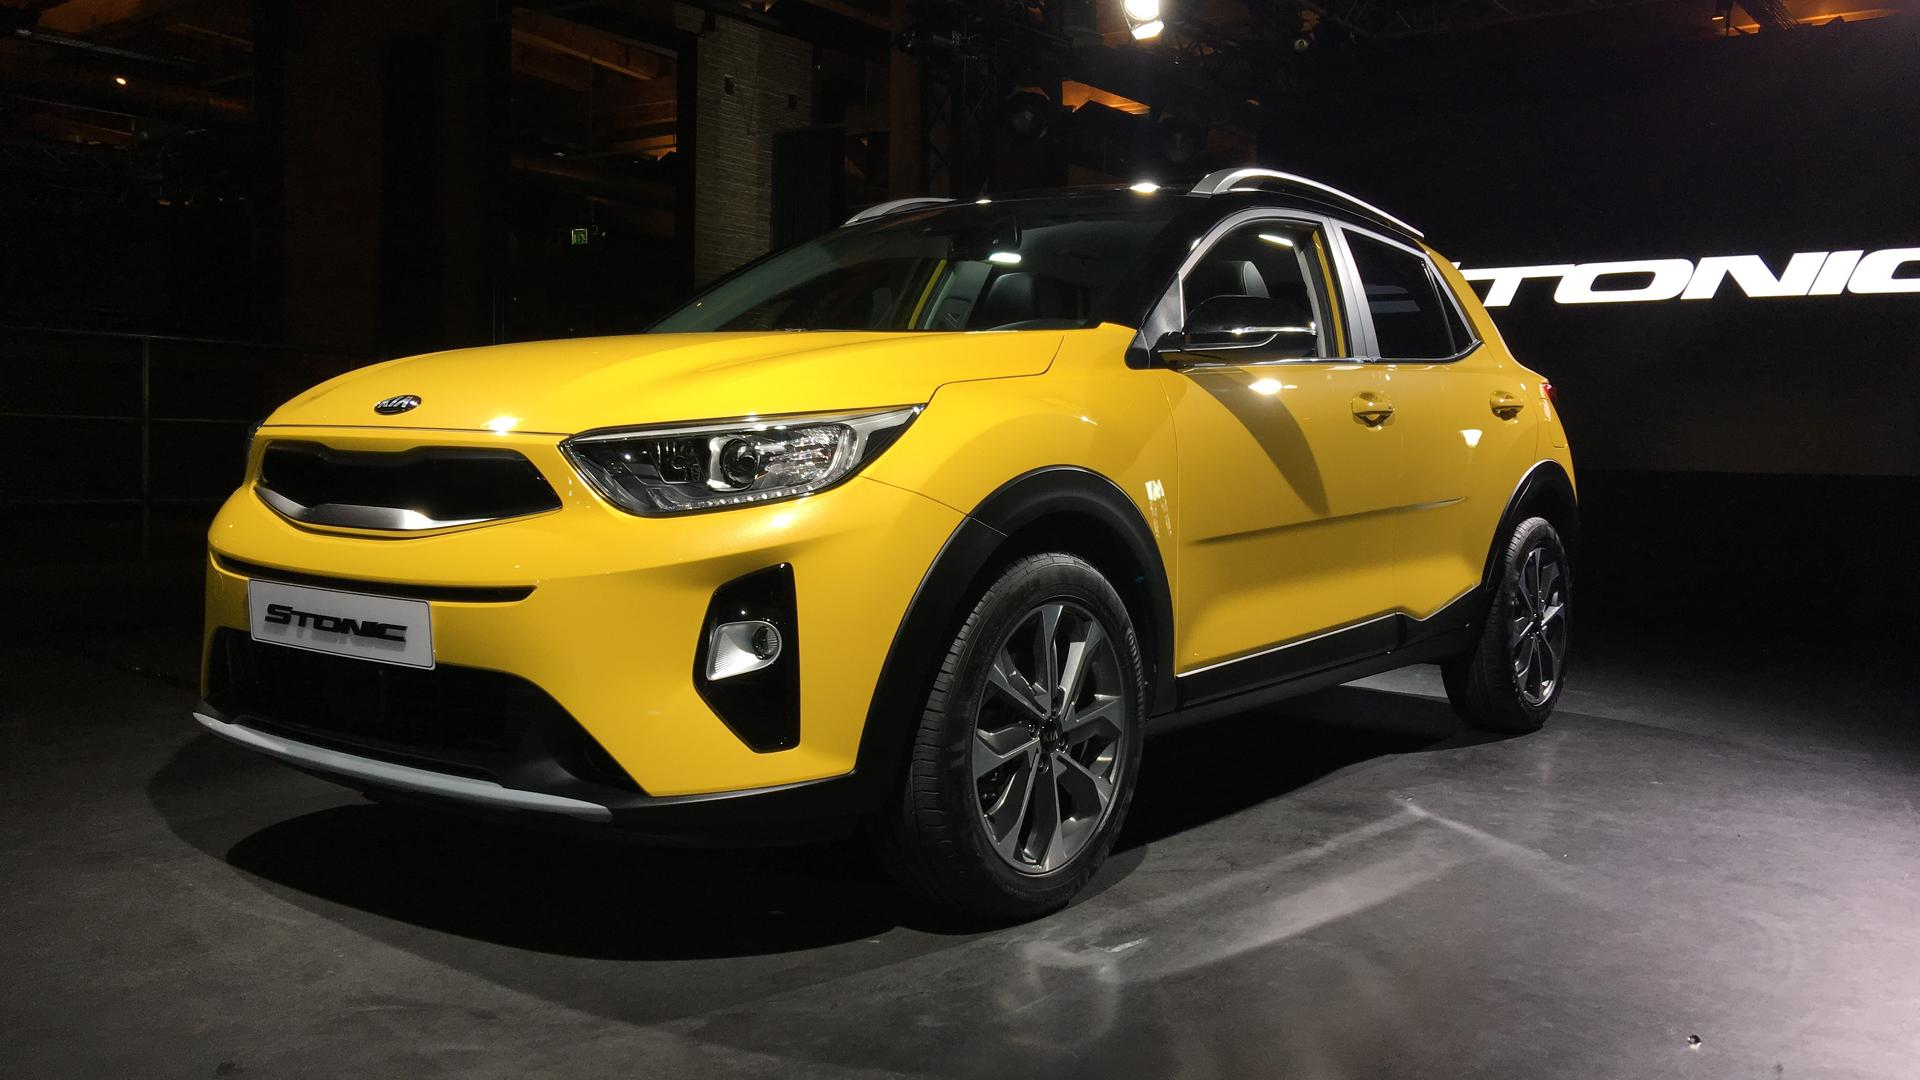 2018 kia stonic subcompact crossover debuts in the metal. Black Bedroom Furniture Sets. Home Design Ideas